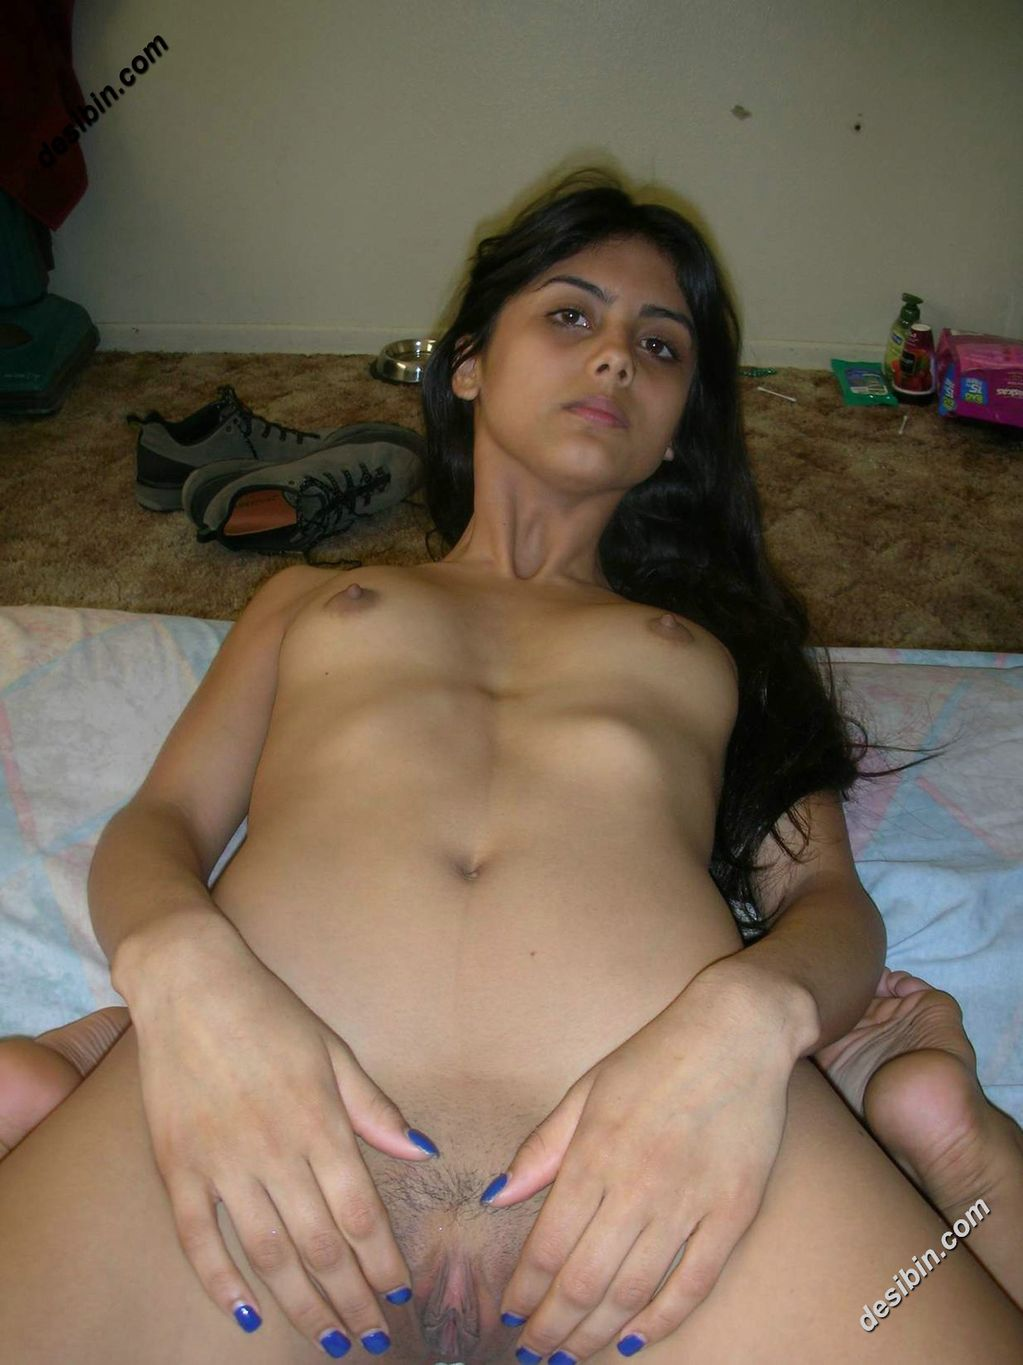 desi hot girls nude